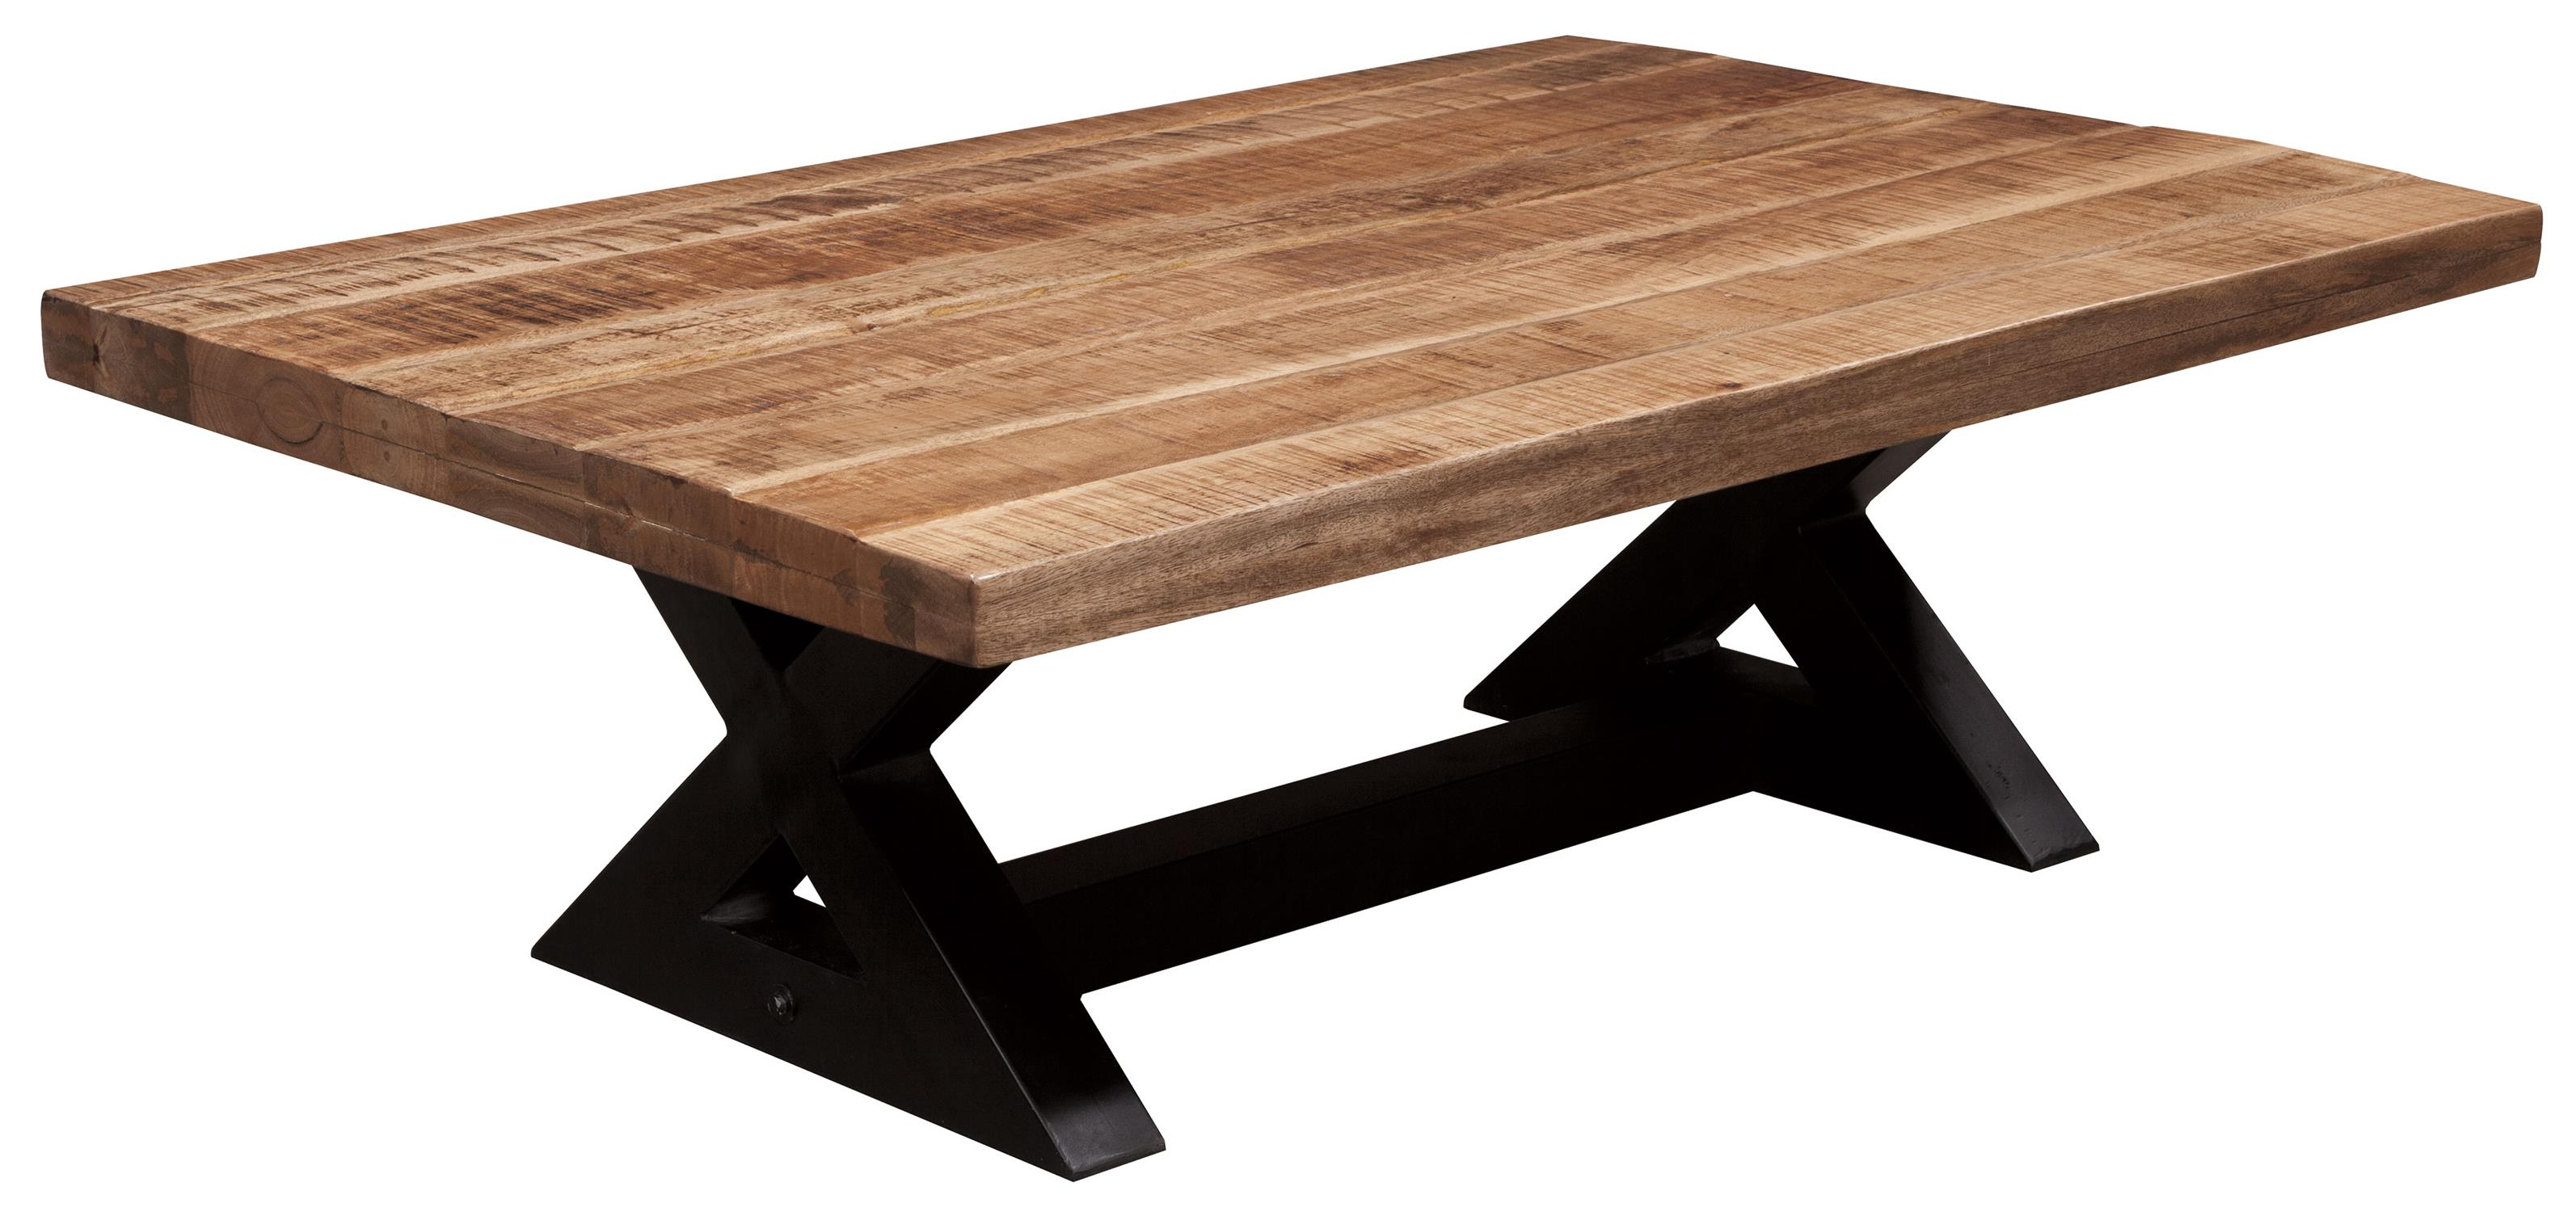 Rectangular Cocktail Table With Mango Wood Top Amp Metal X Braced Base By Signature Design By